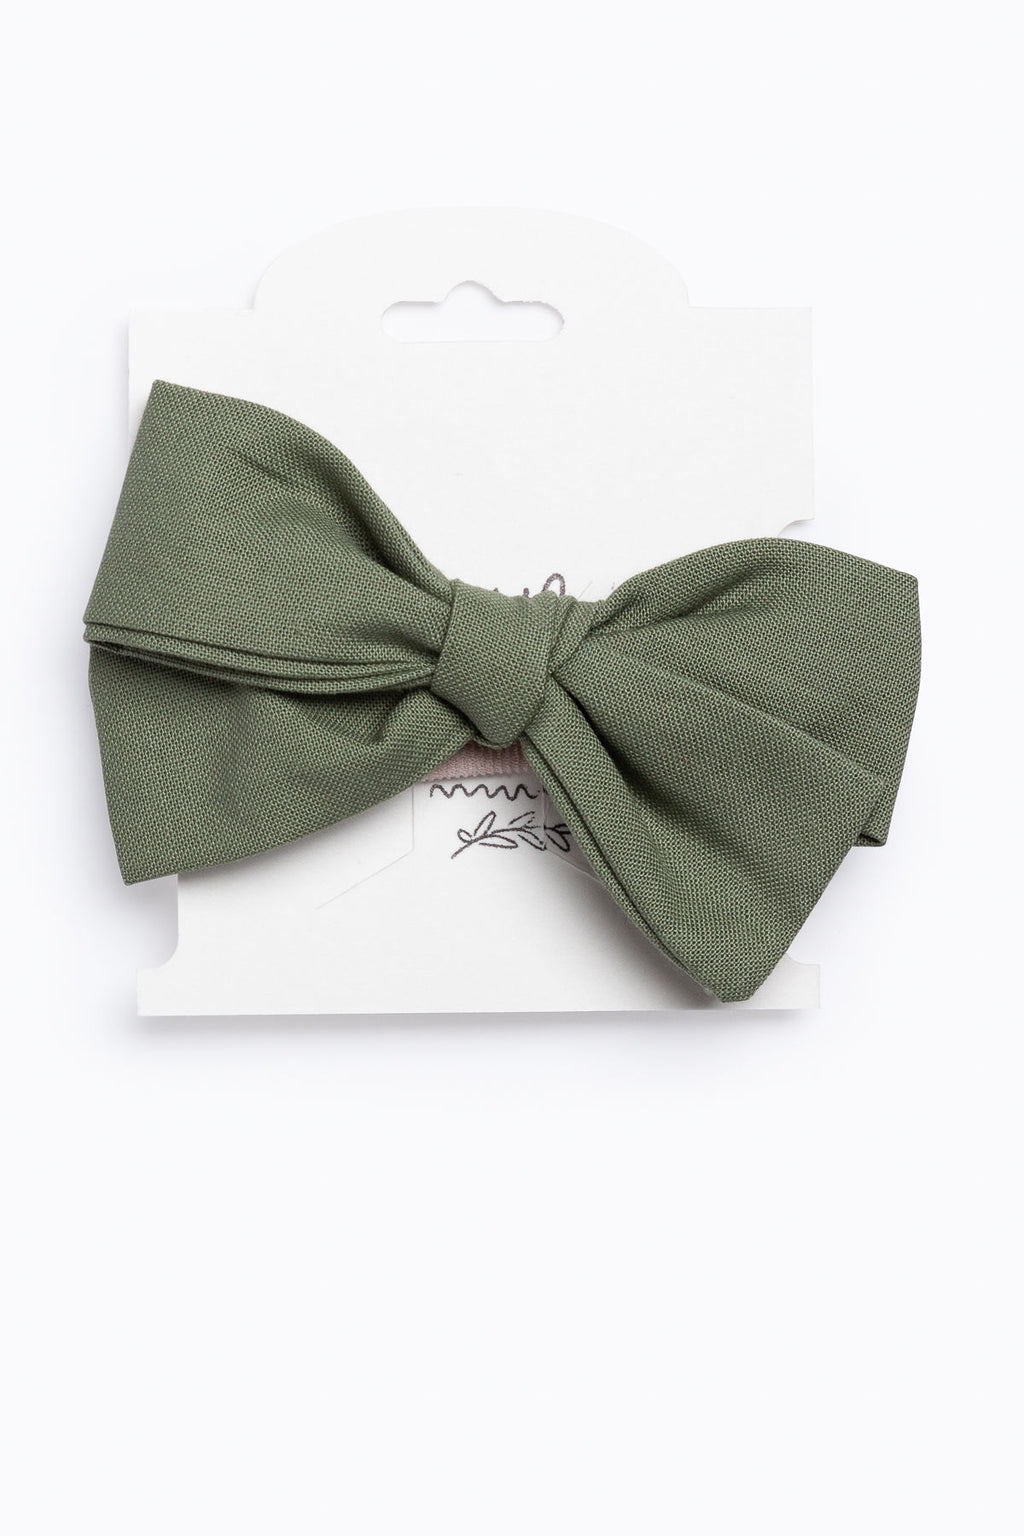 Little Ella Rae: Quincey Bow in Olive